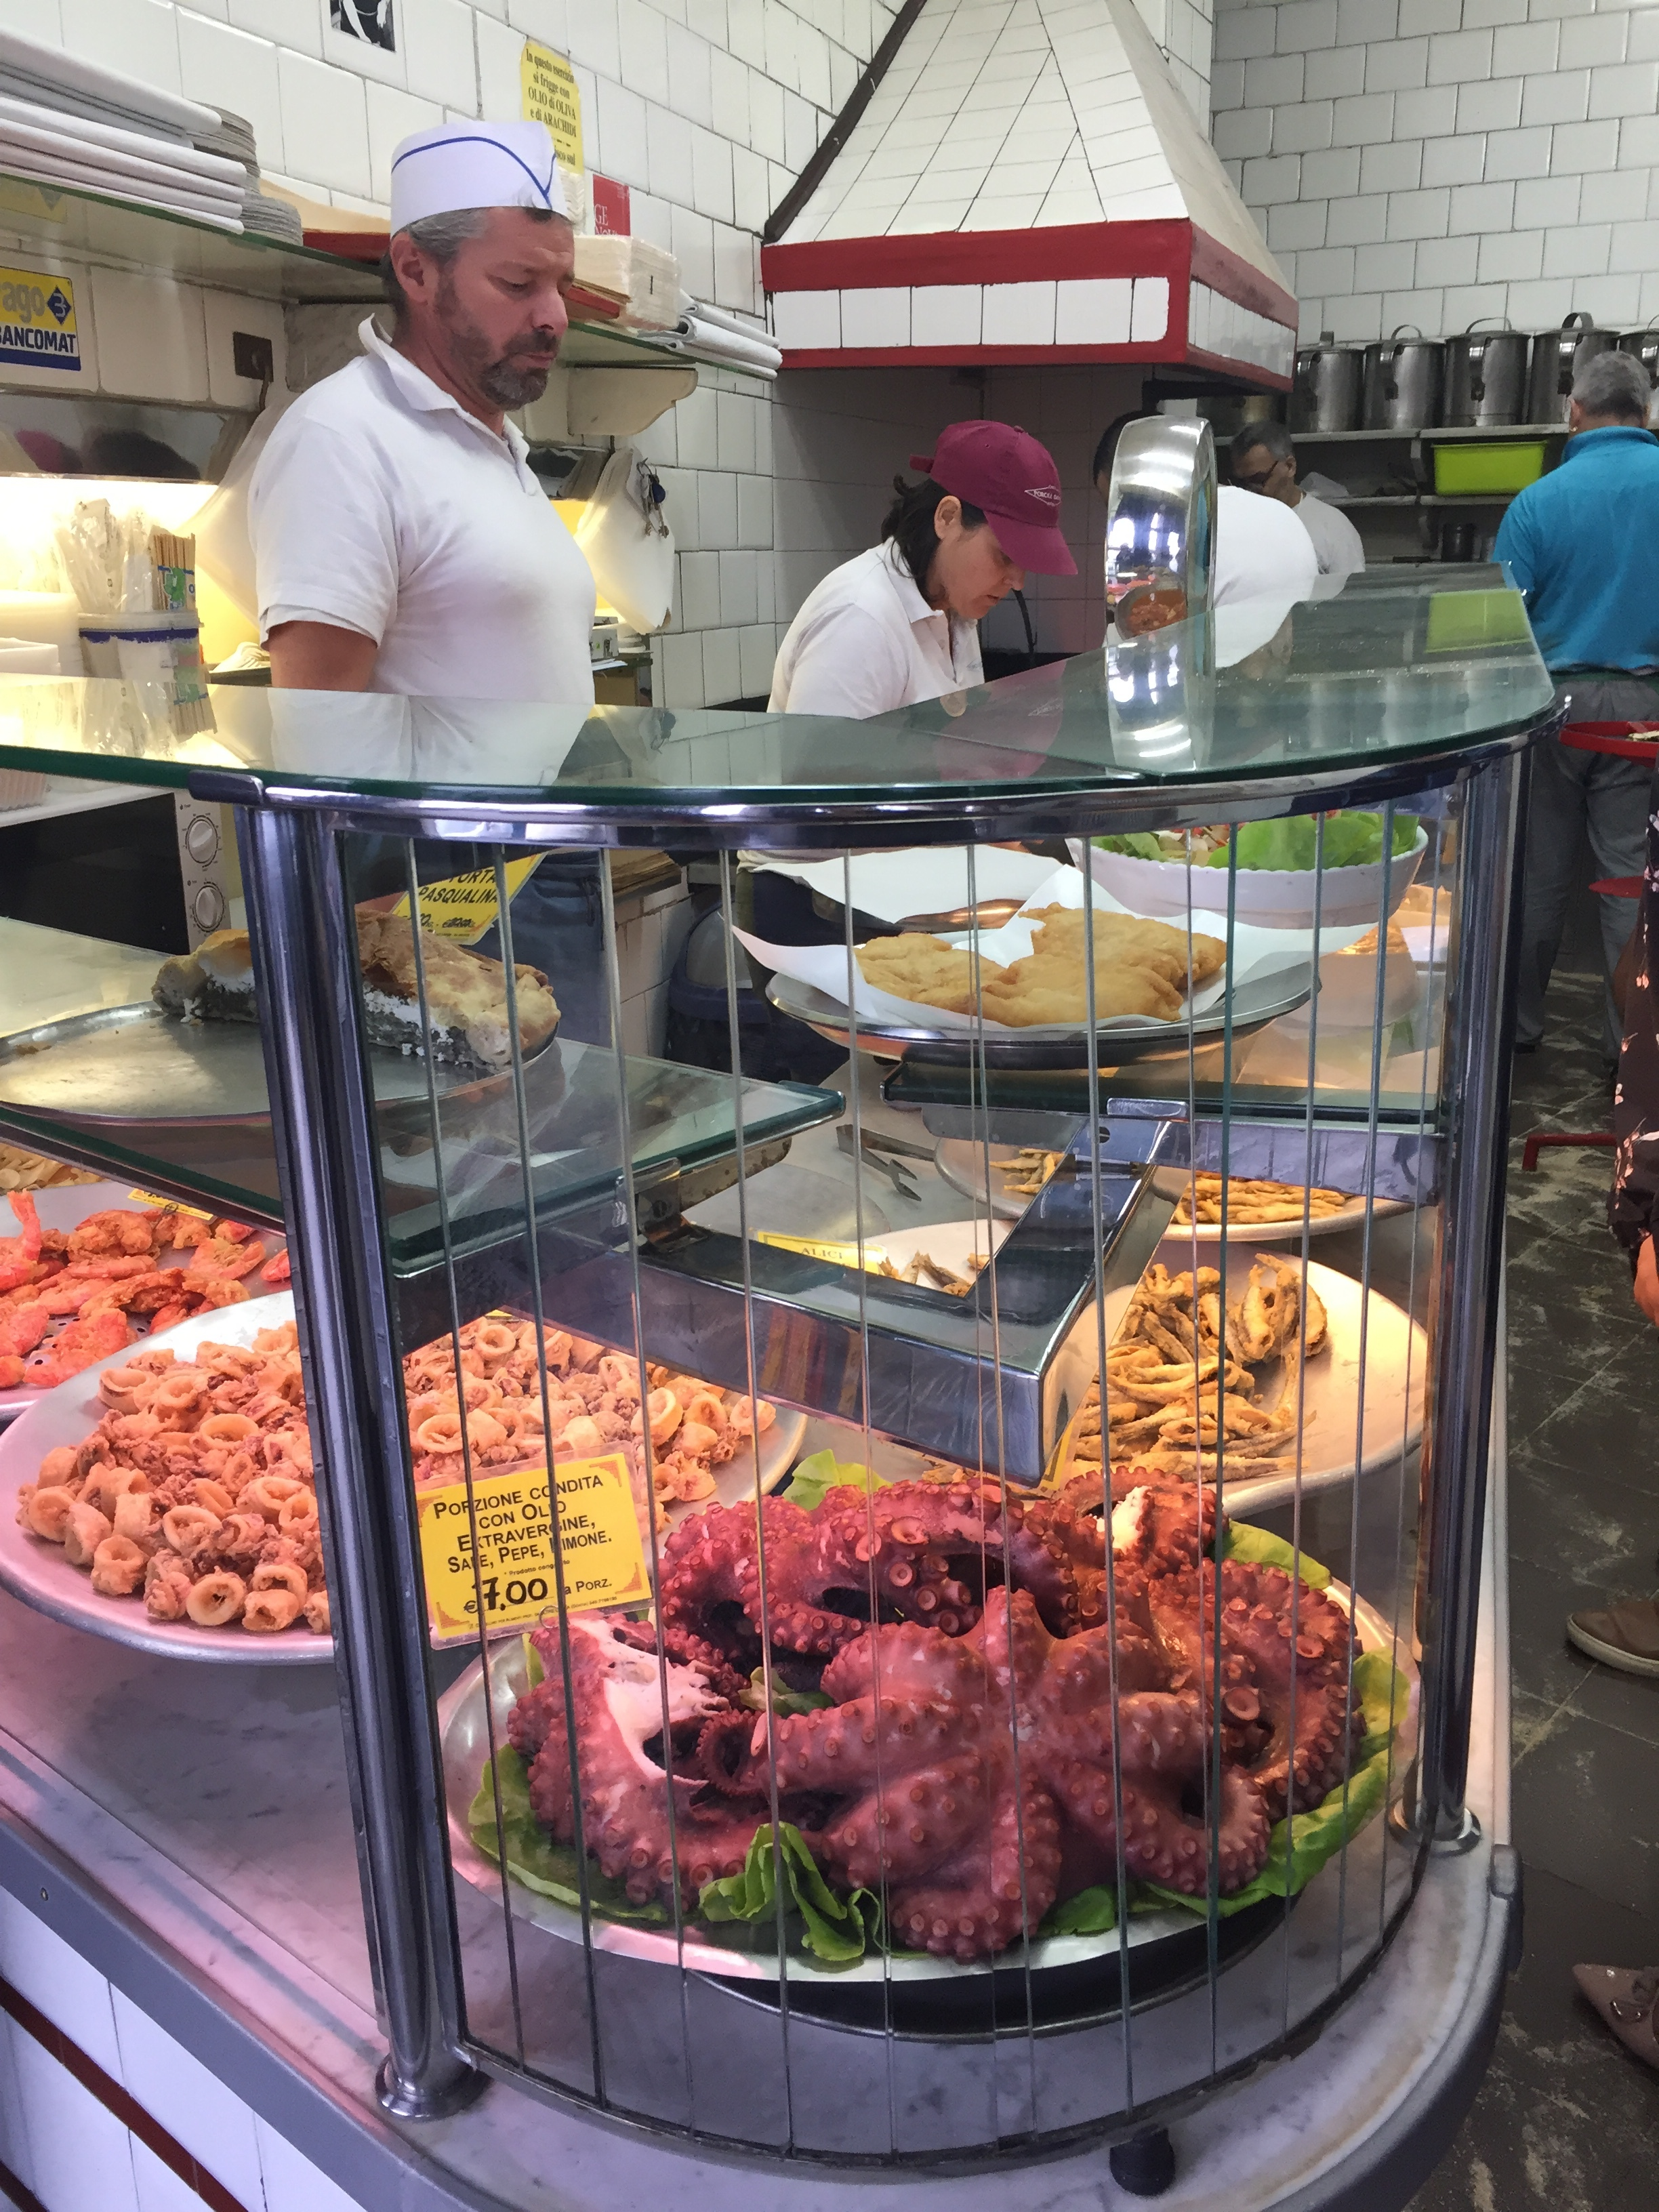 All along the port it is possible to eat at these small, popular restaurants specializing in seafood. Fast-food Genoese style. We would go back to food later, but in a rather different way…